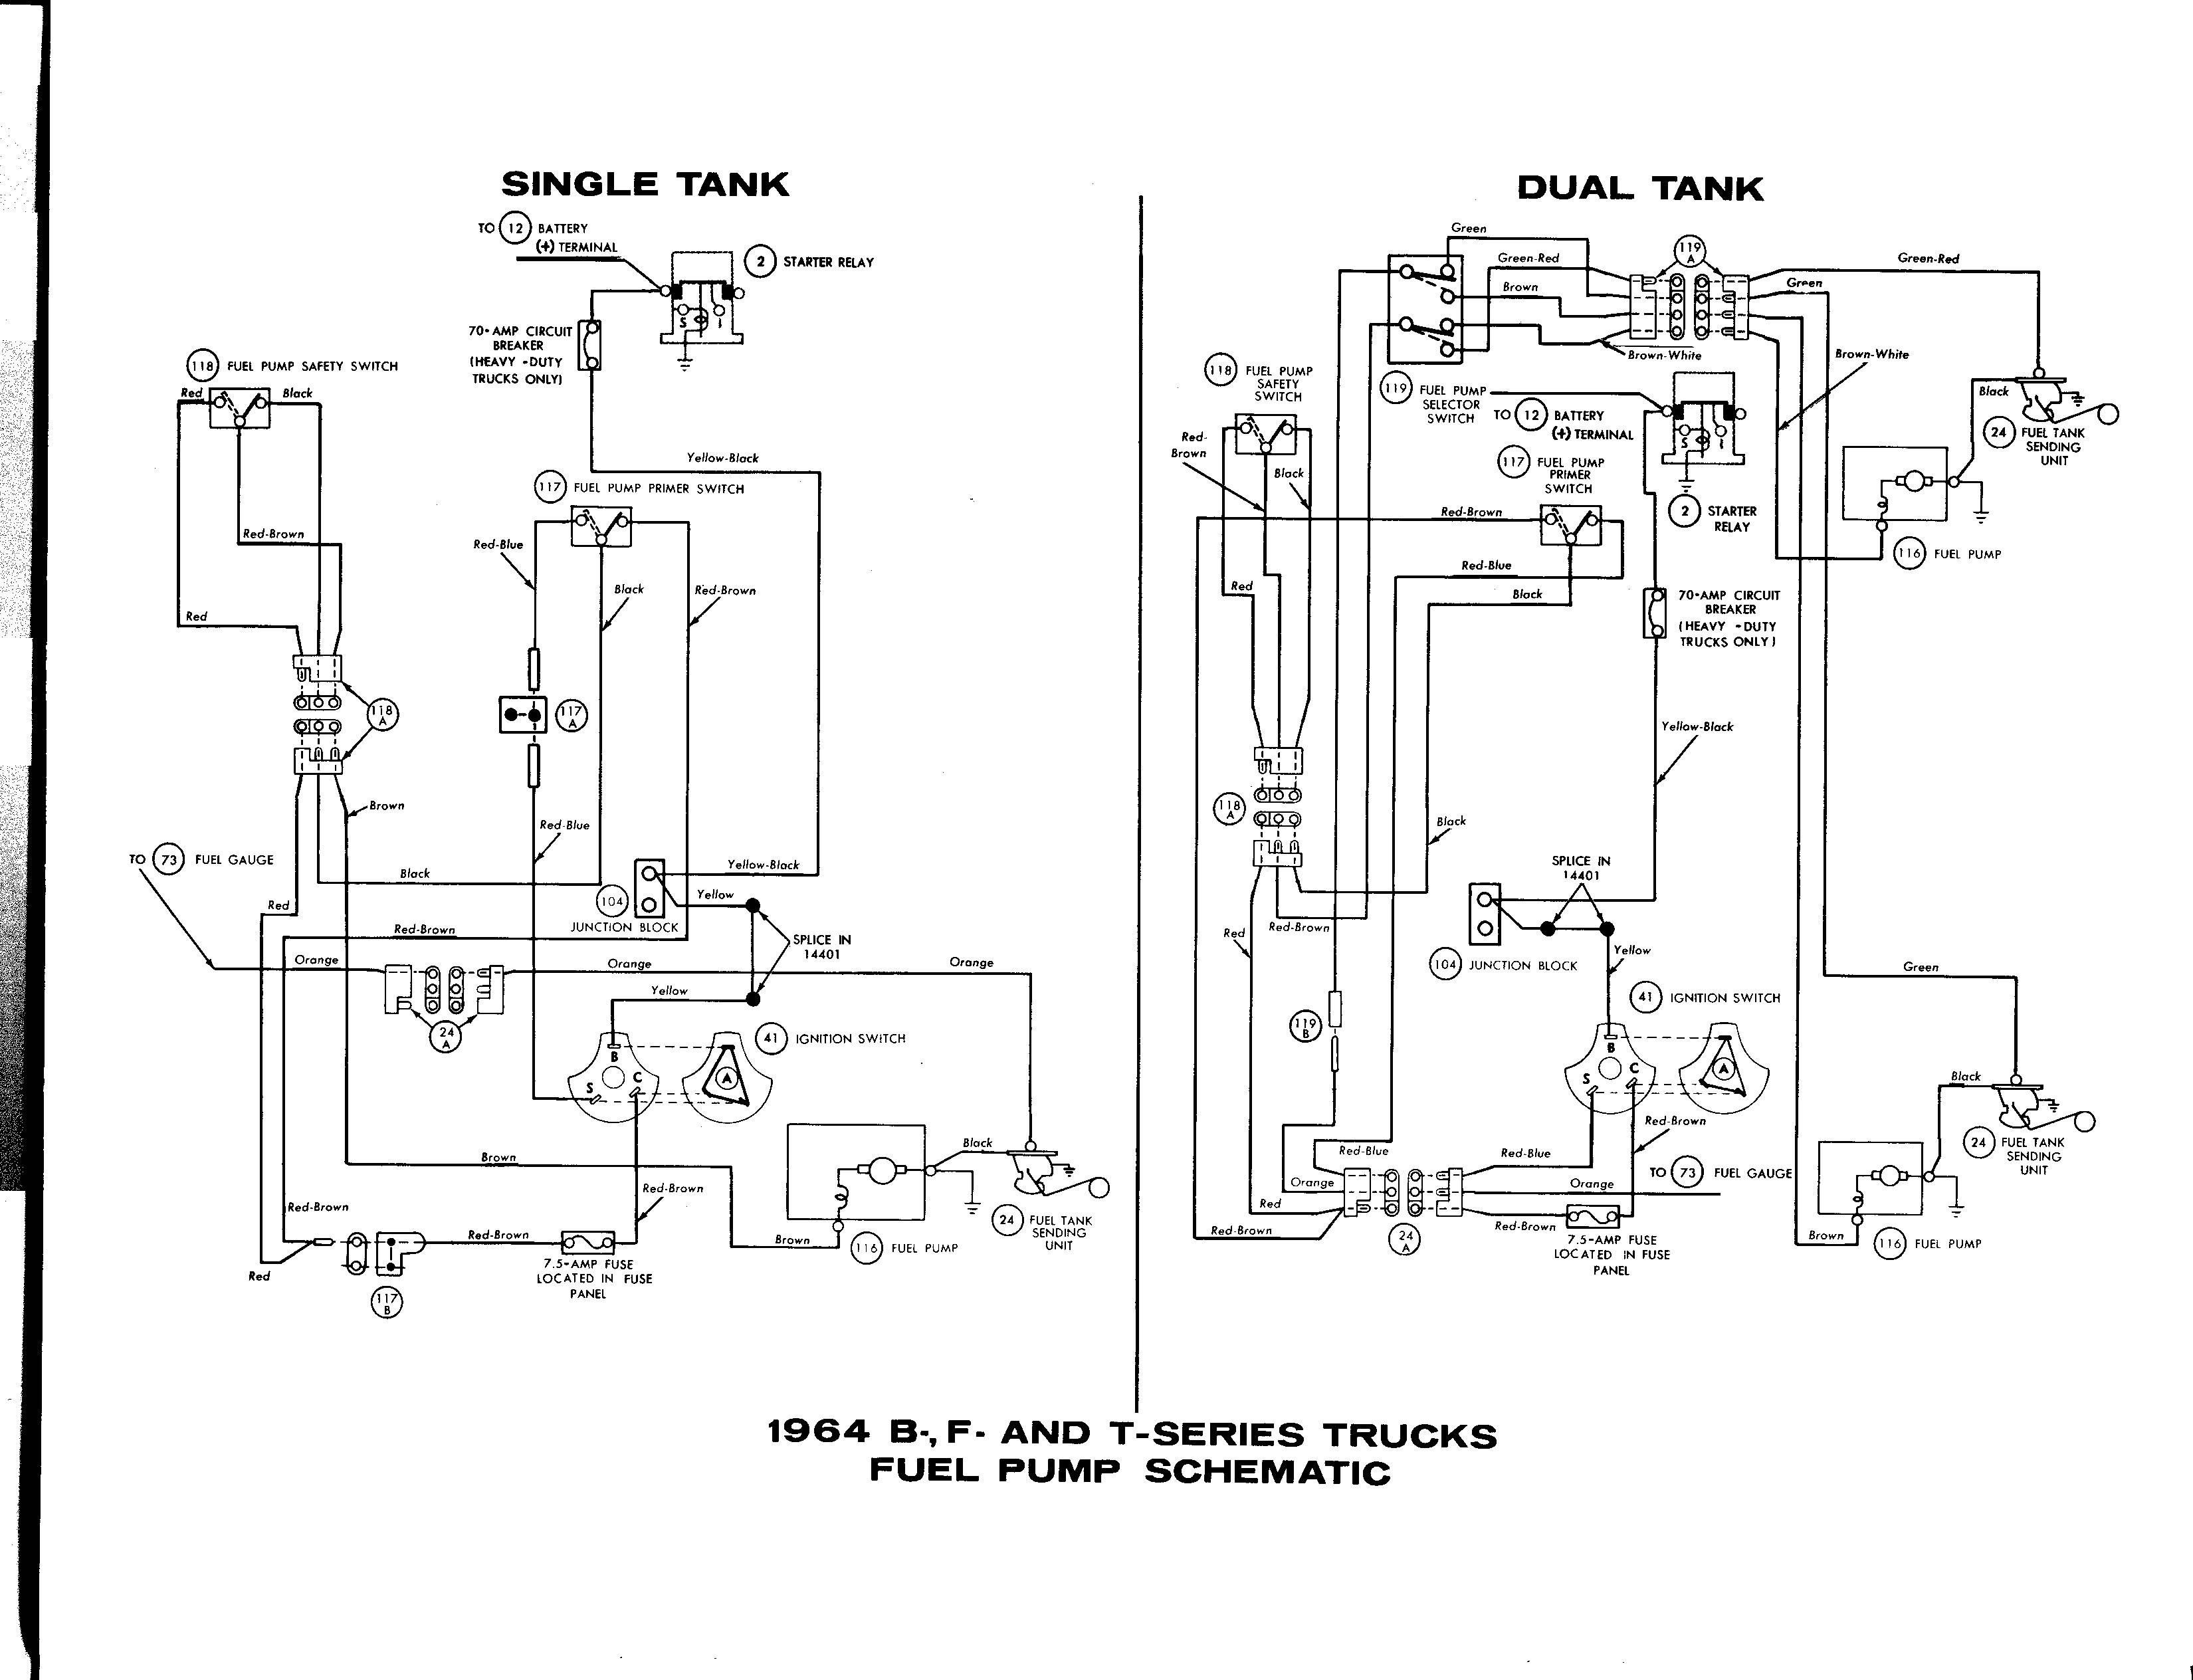 Wiring Diagram For Pelco Ptz2602wdr